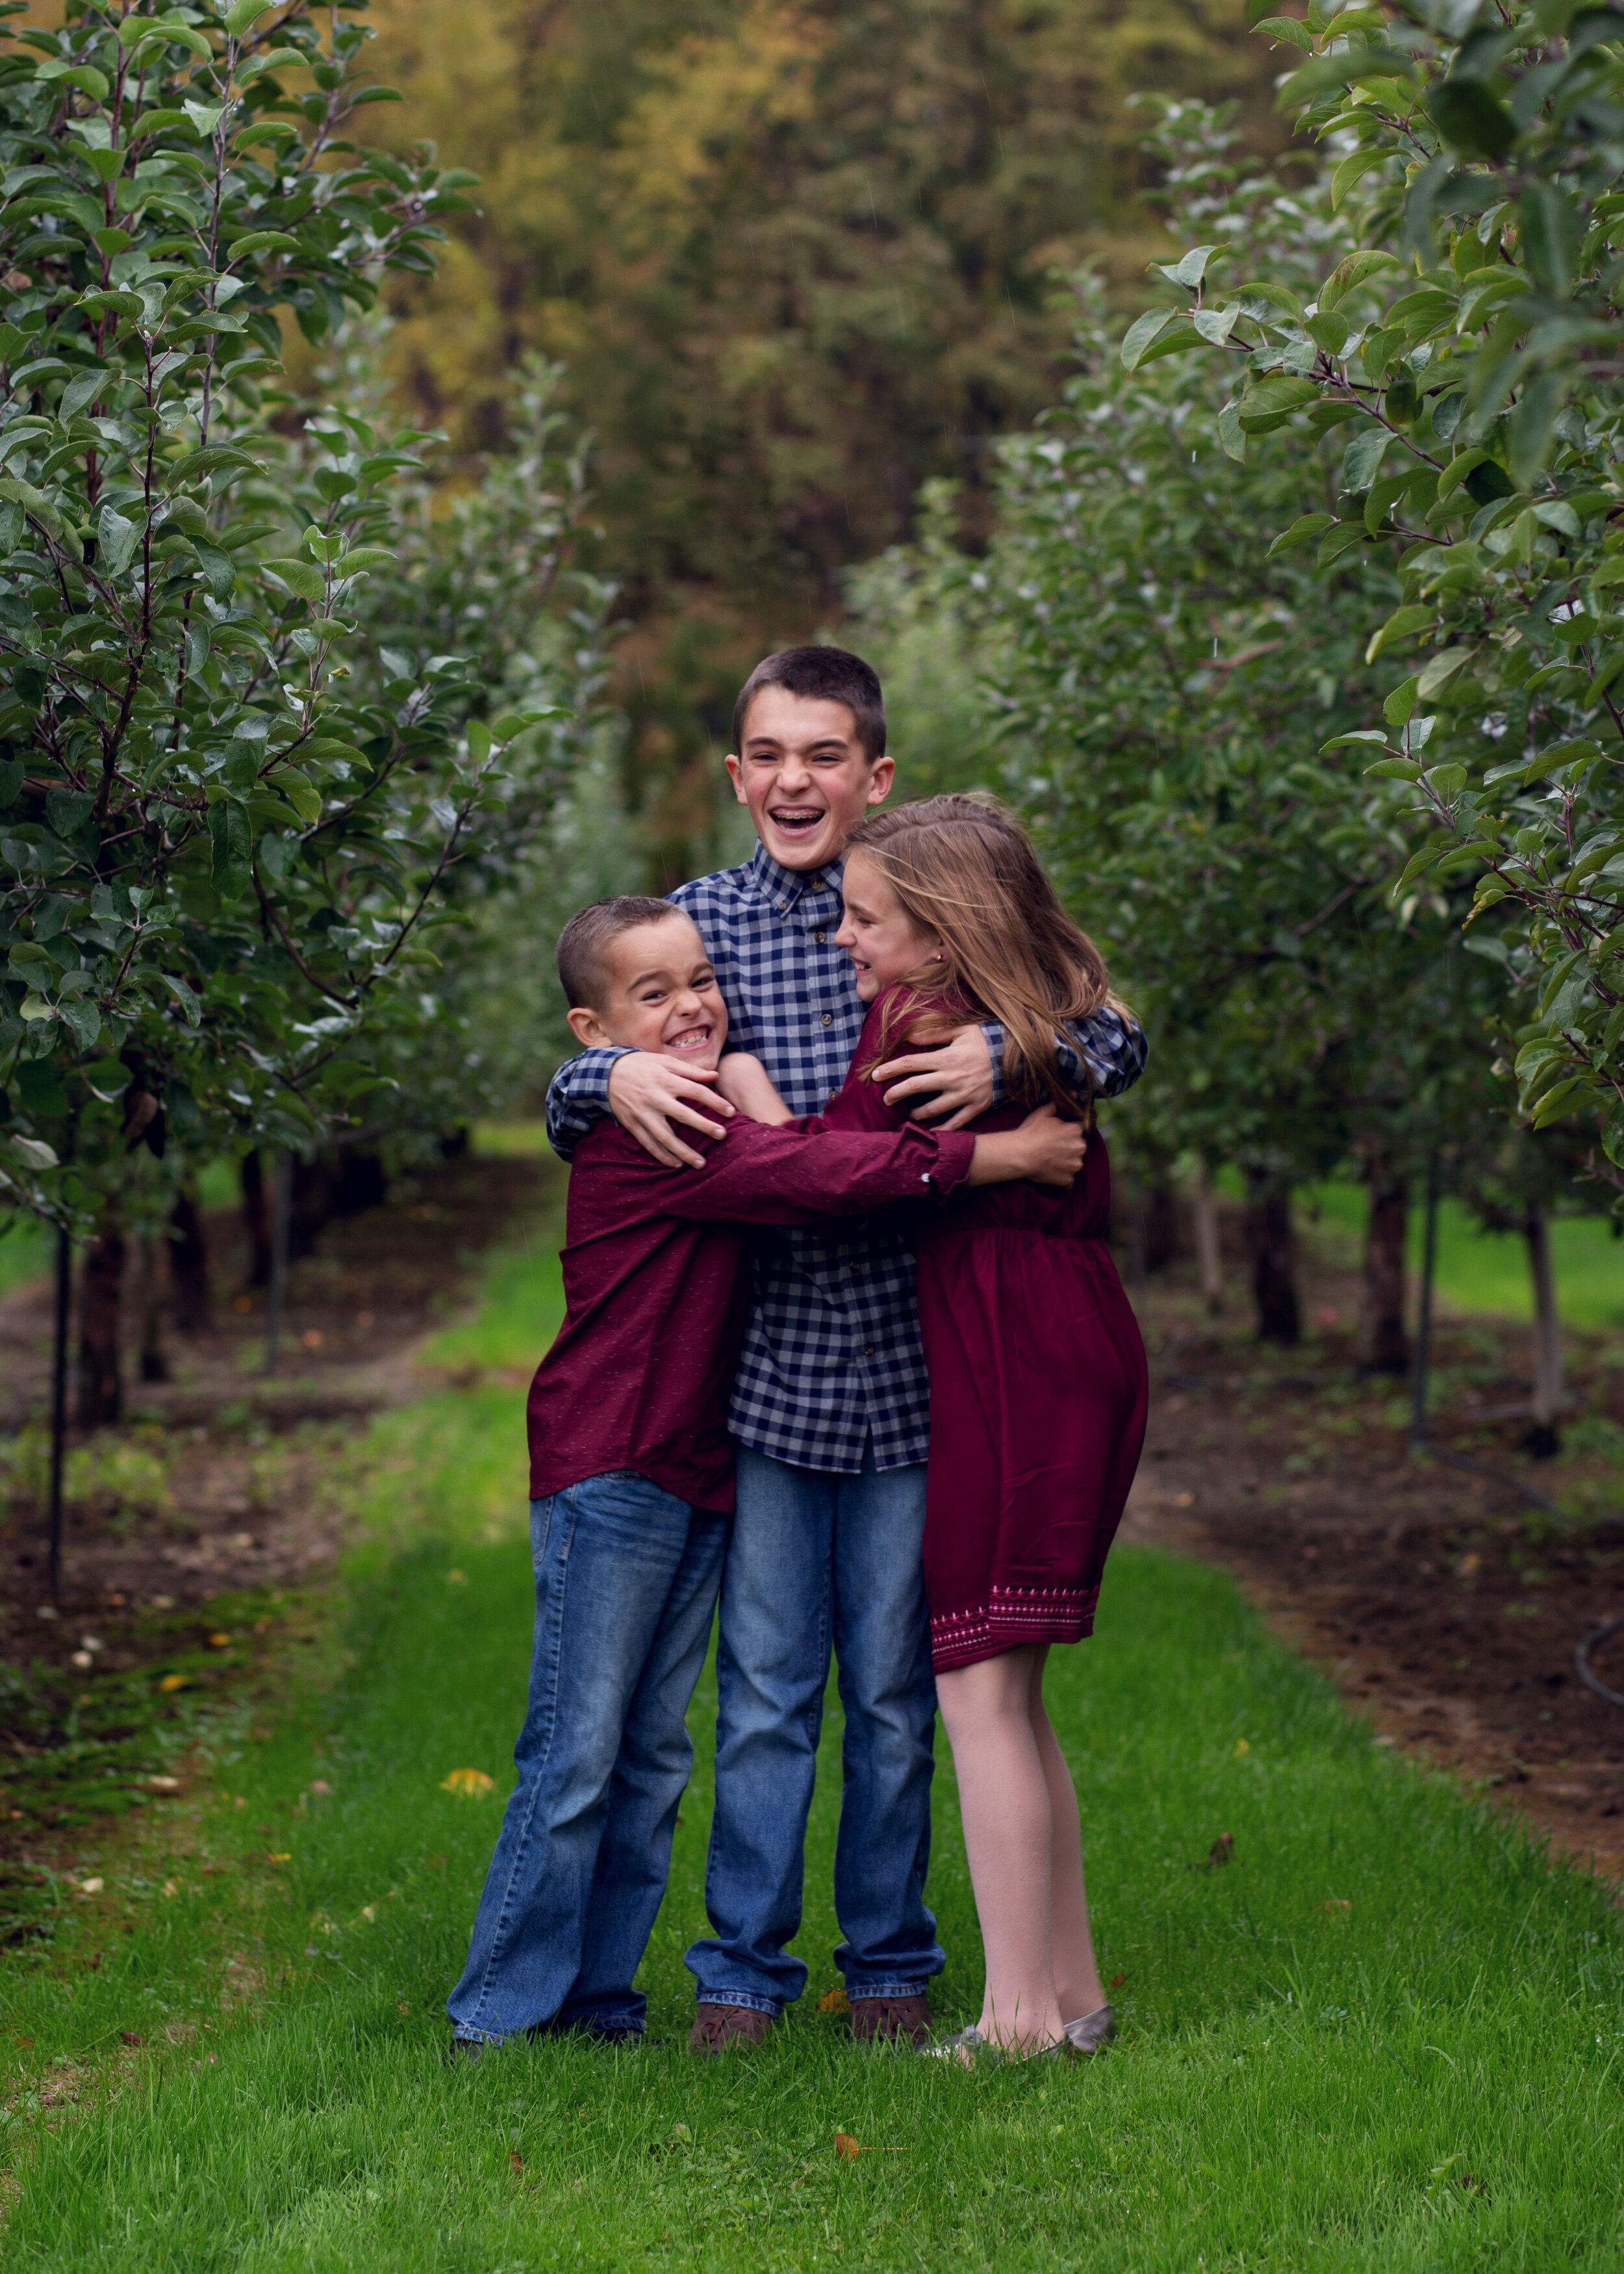 Children's Photographer | Kelly Rhoades Photography